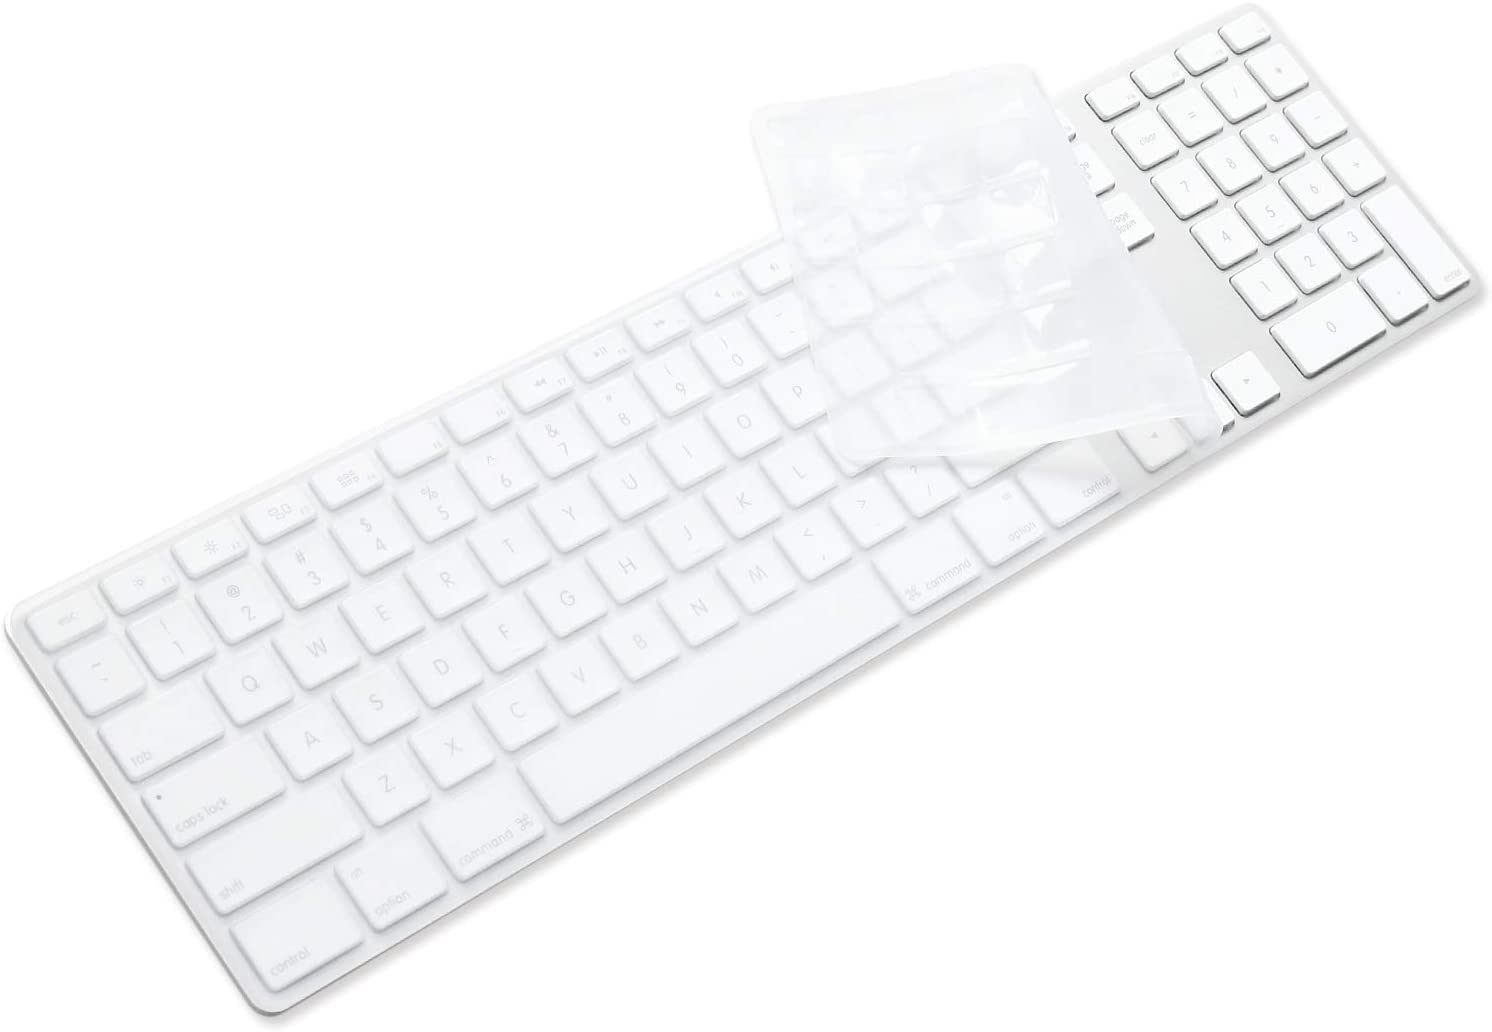 ProElife Silicone Full Size Ultra Thin Keyboard Cover Skin for Apple iMac Keyboard Numeric Keypad Wired USB MB110LL/B-A1243 (NOT FIT Magic Keyboard, ITEM FOLDED IN PACKAGING) (Clear)